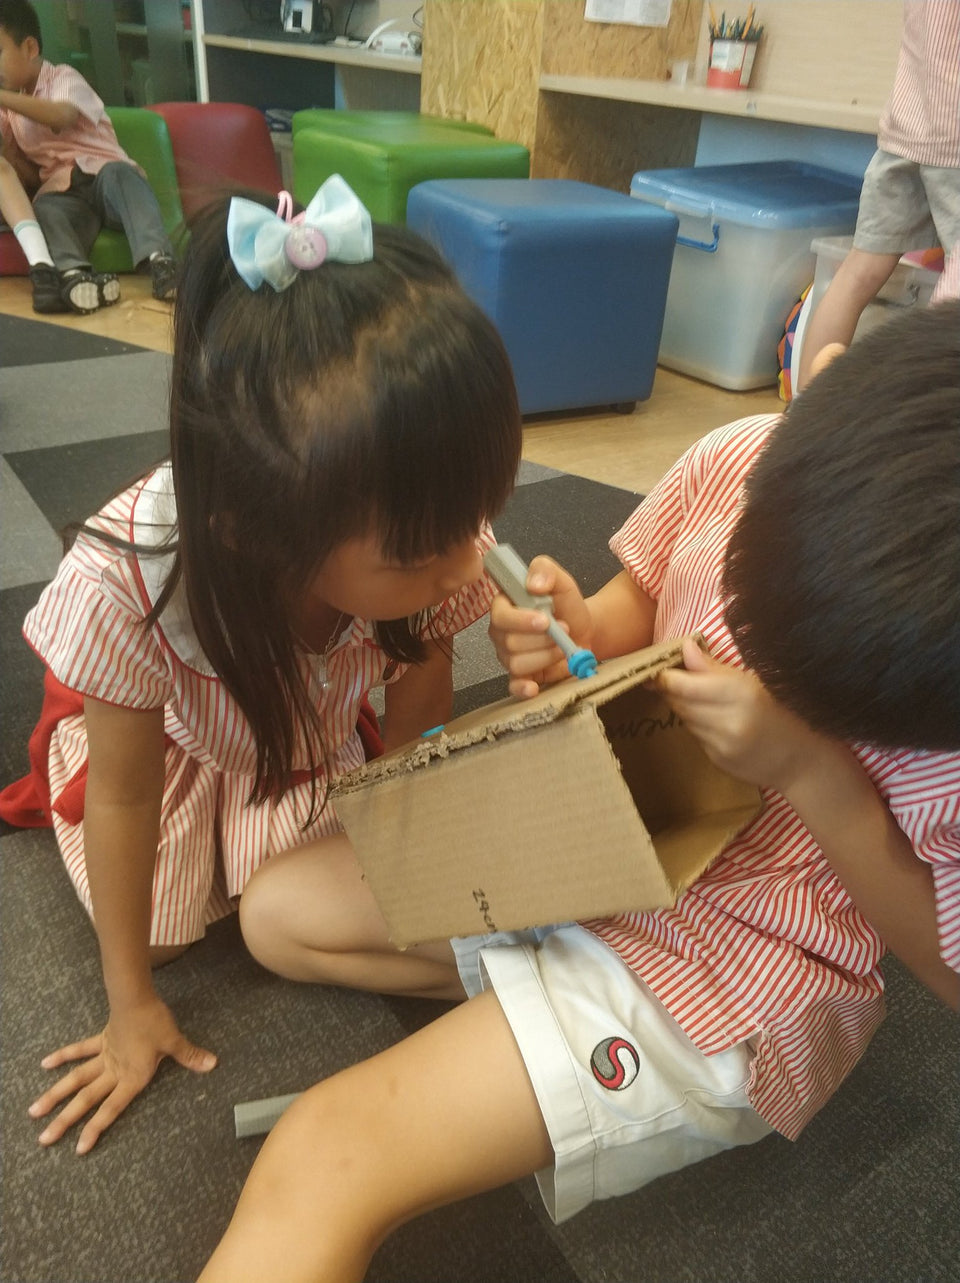 Makedo cardboard construction in the classroom shows fantastic teamwork